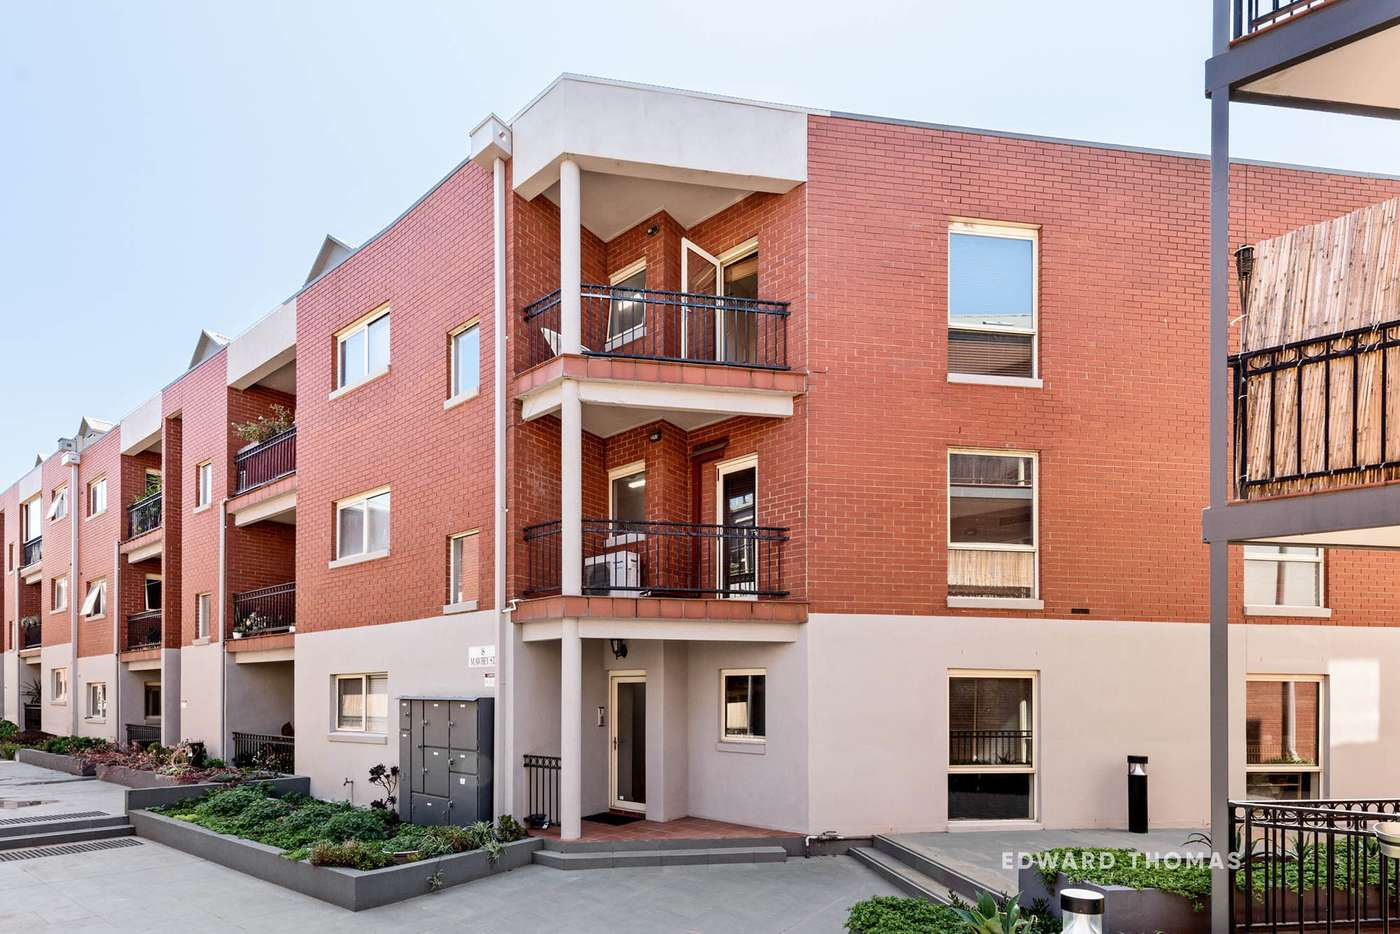 Main view of Homely apartment listing, 22/18 Mawbey Street, Kensington VIC 3031